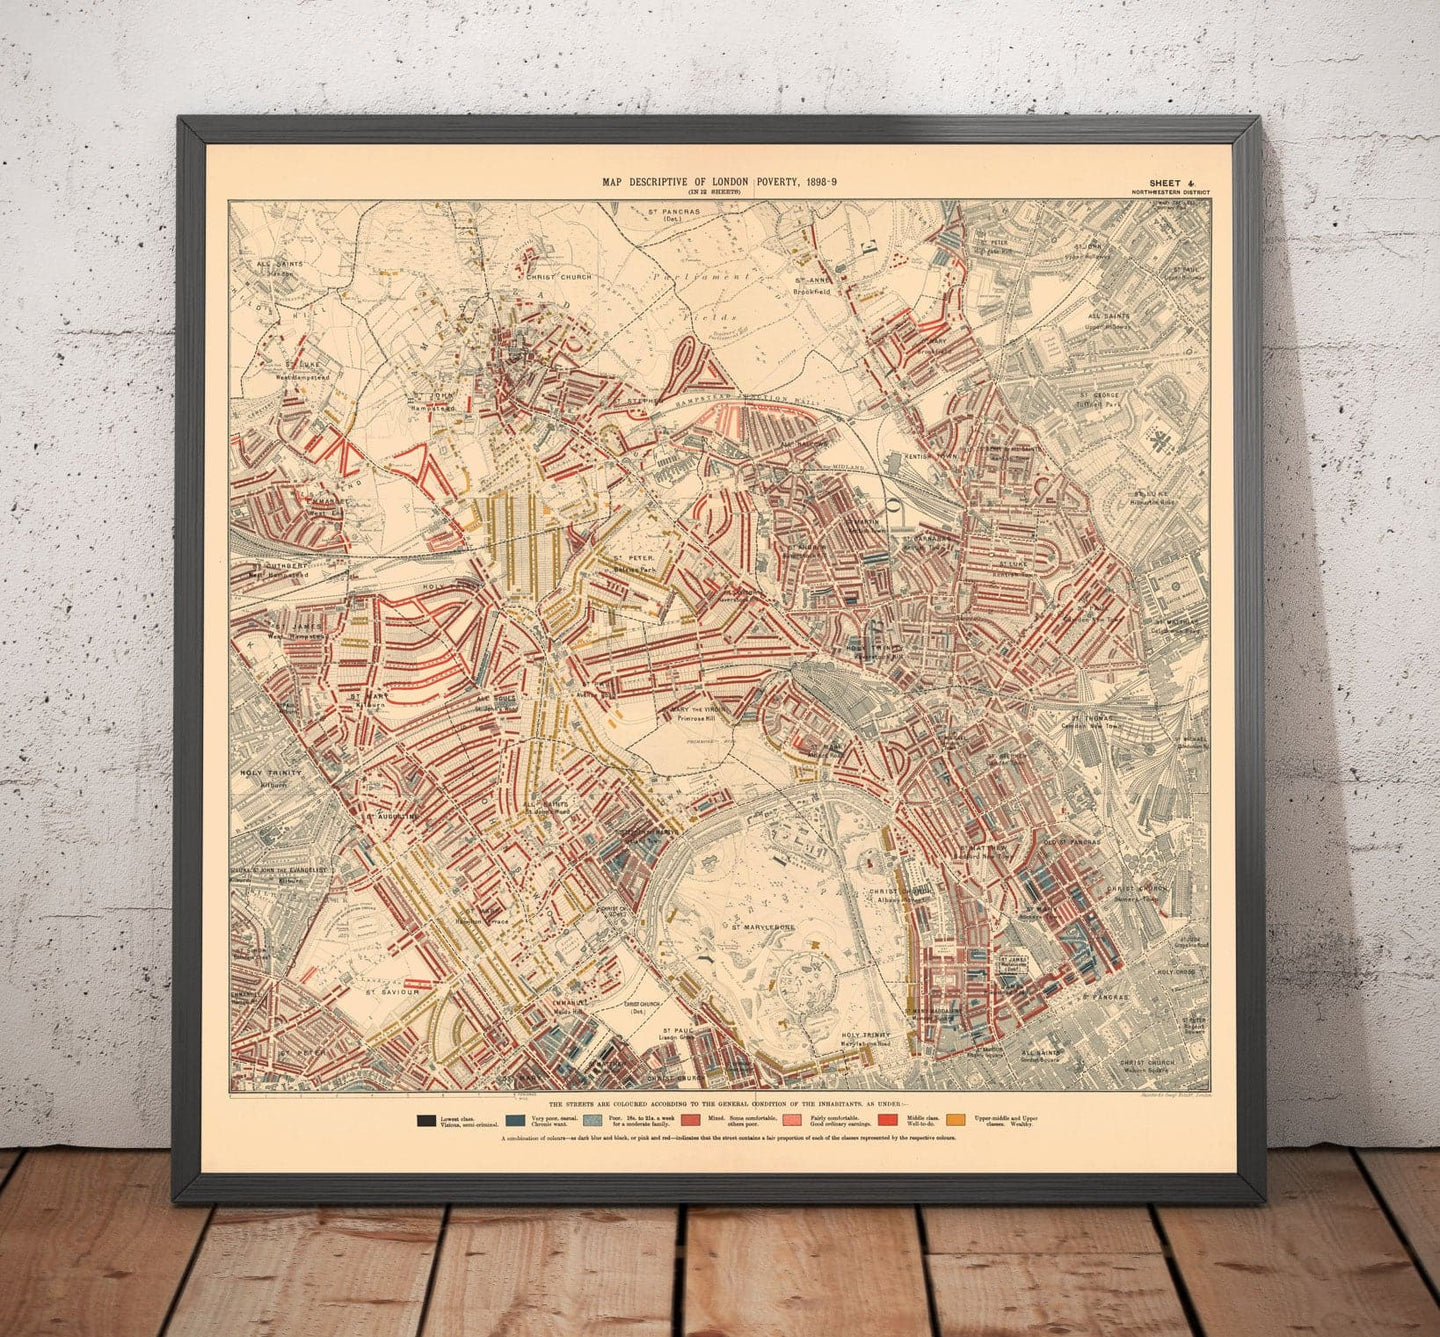 Map of London Poverty 1898-9, North Western District, by Charles Booth - Framed or Unframed